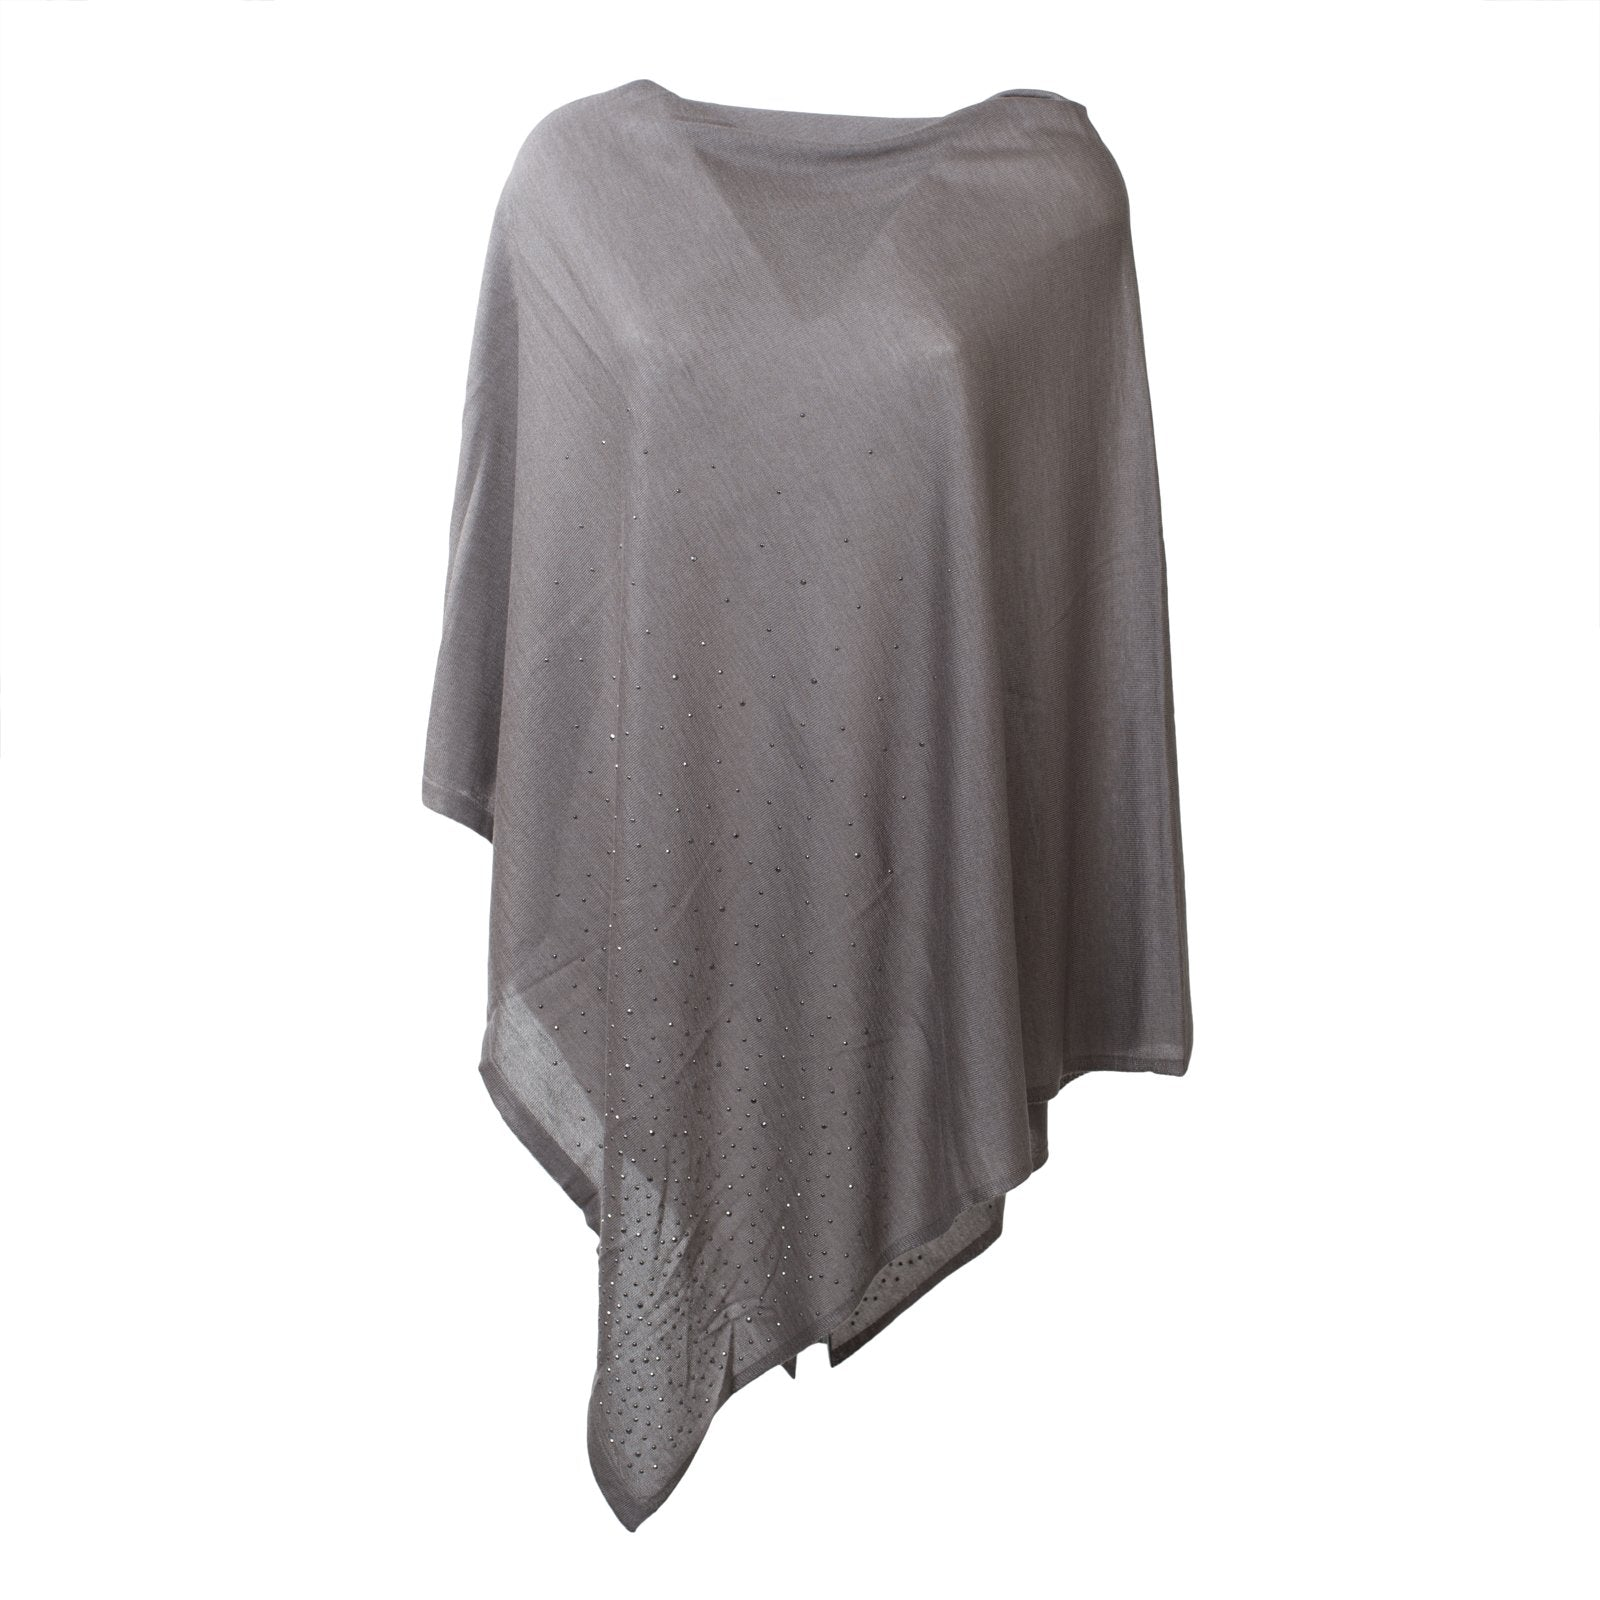 Large Pashmina Poncho With Studs in Light Grey - Jennifer Tattanelli